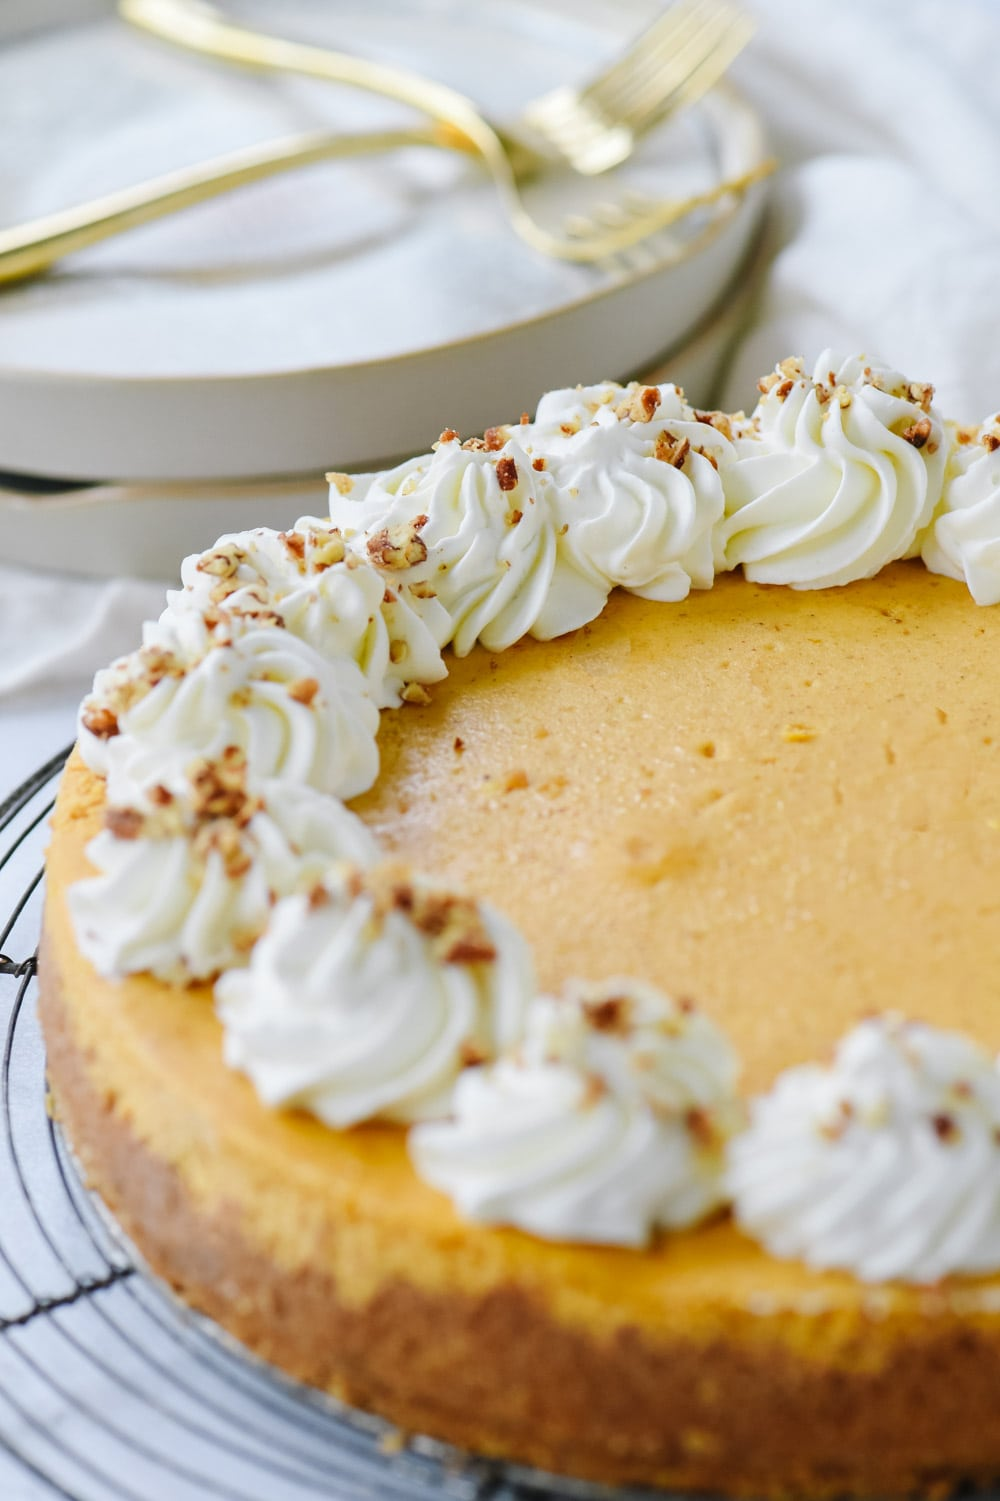 pumpkin cheesecake with whipped cream on top